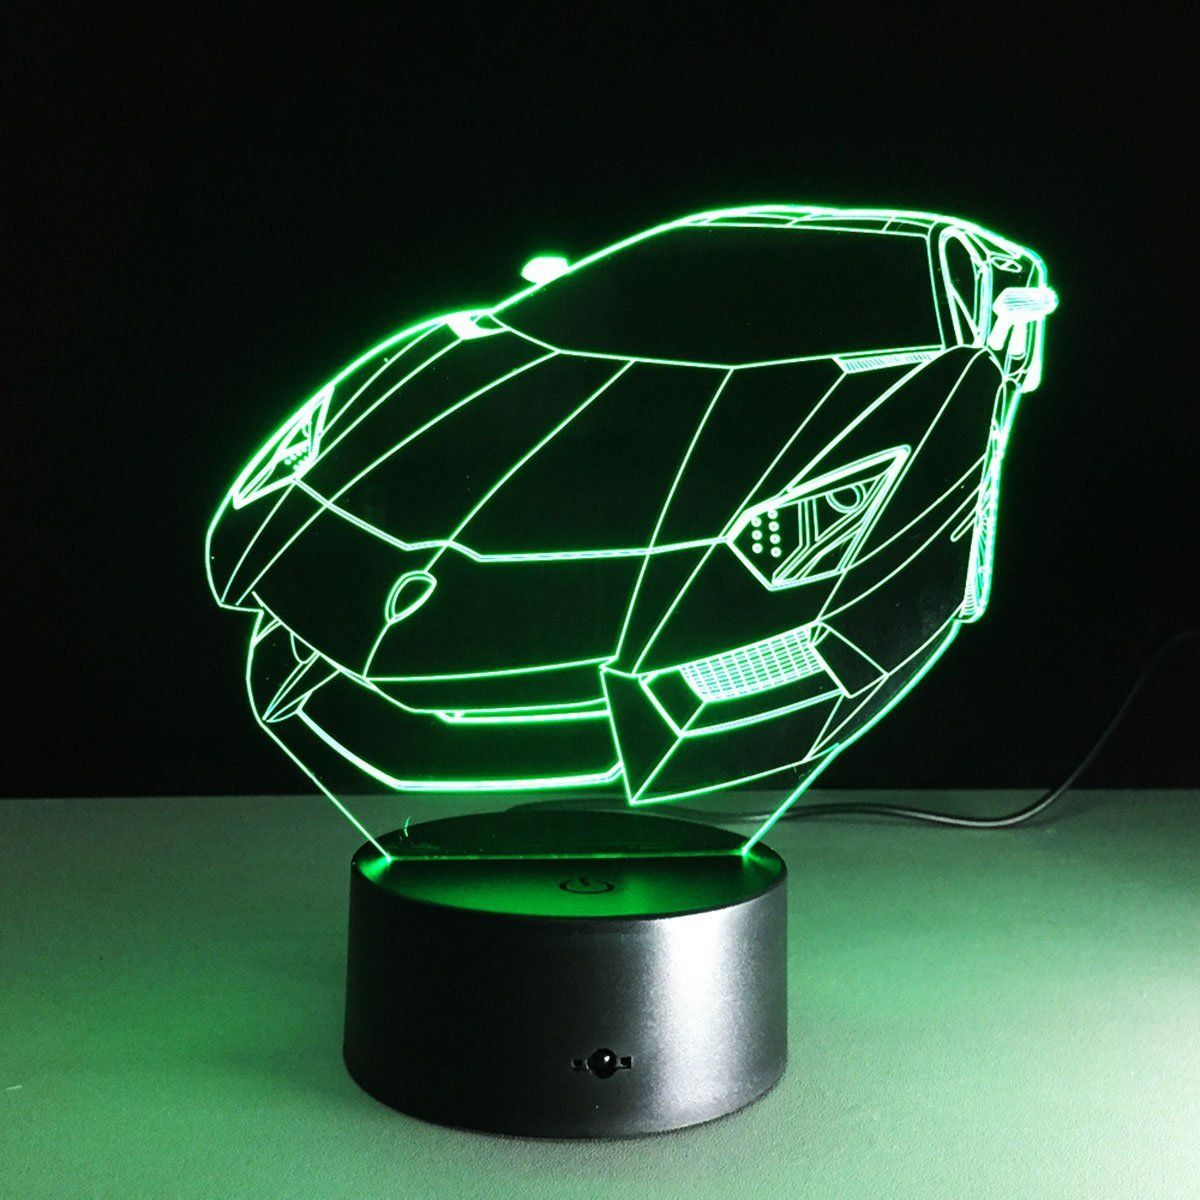 Novelty 3d Vehicle Design Table Desk Lamp 7 Colors Optical Illusion Led Night Lights With Unique Lighting Effect Specia 3d Led Night Light Led Night Light Lamp